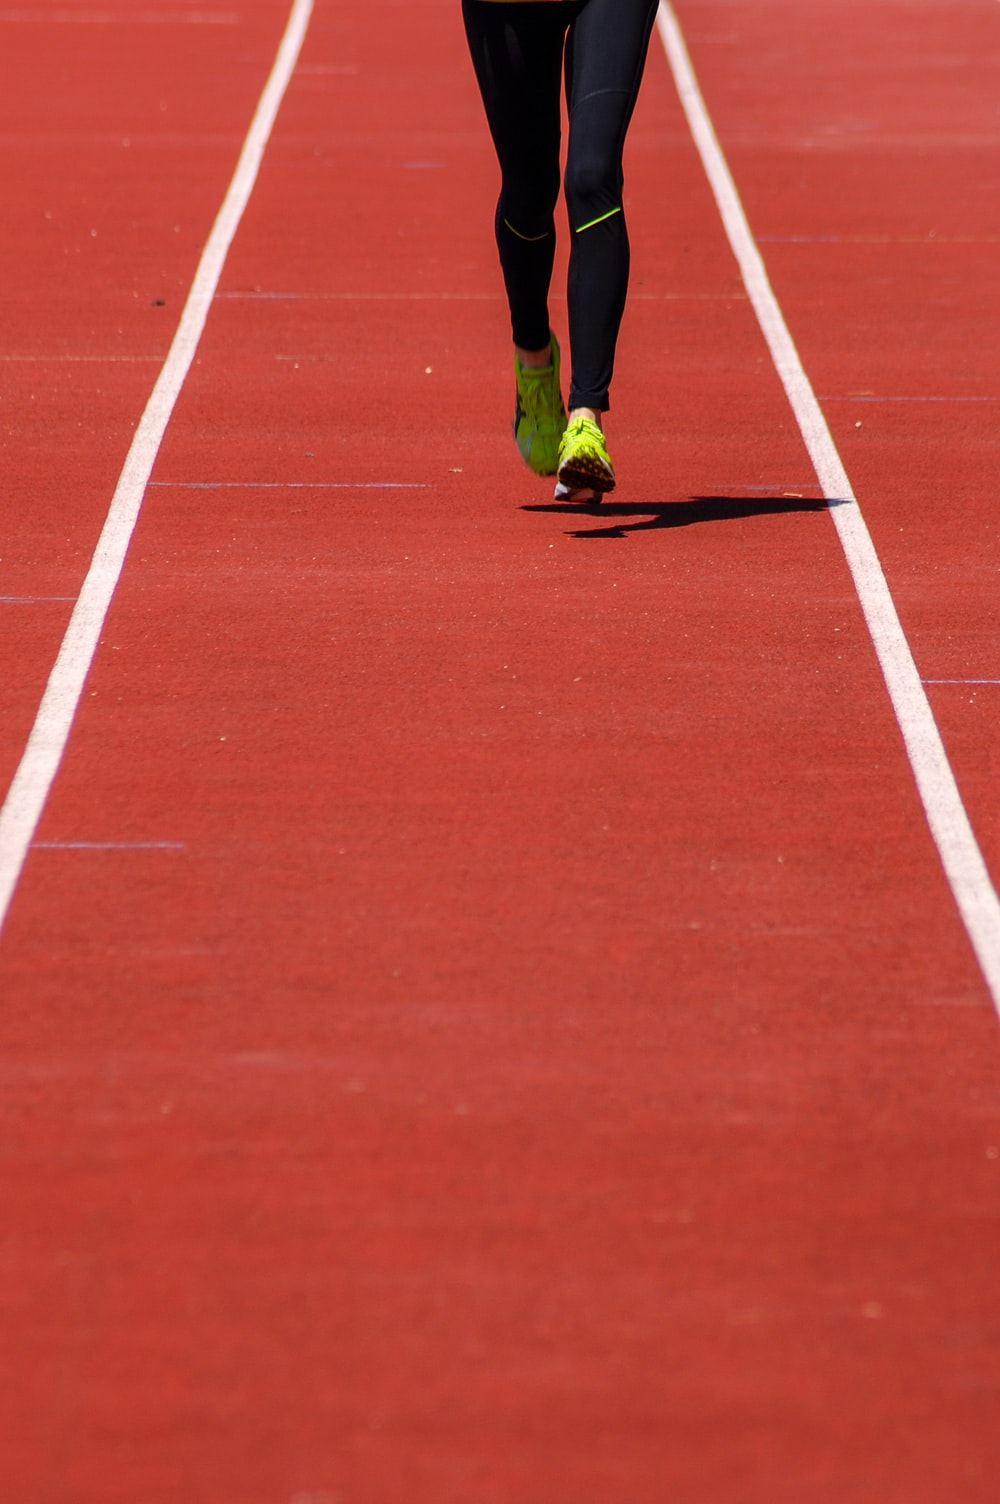 person running on track field